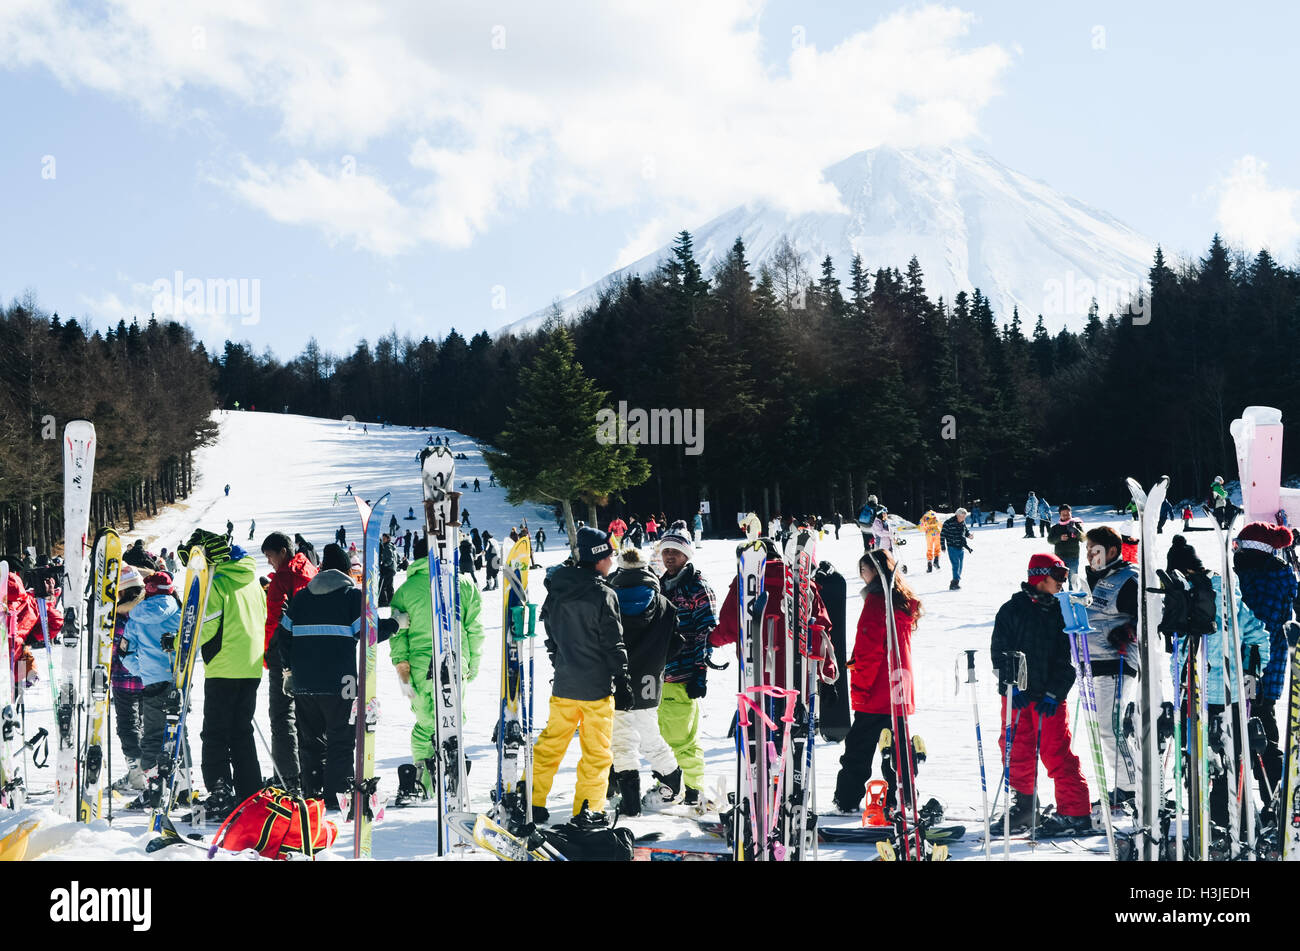 Group of skiers at the foot of mountain at a ski resort - Stock Image